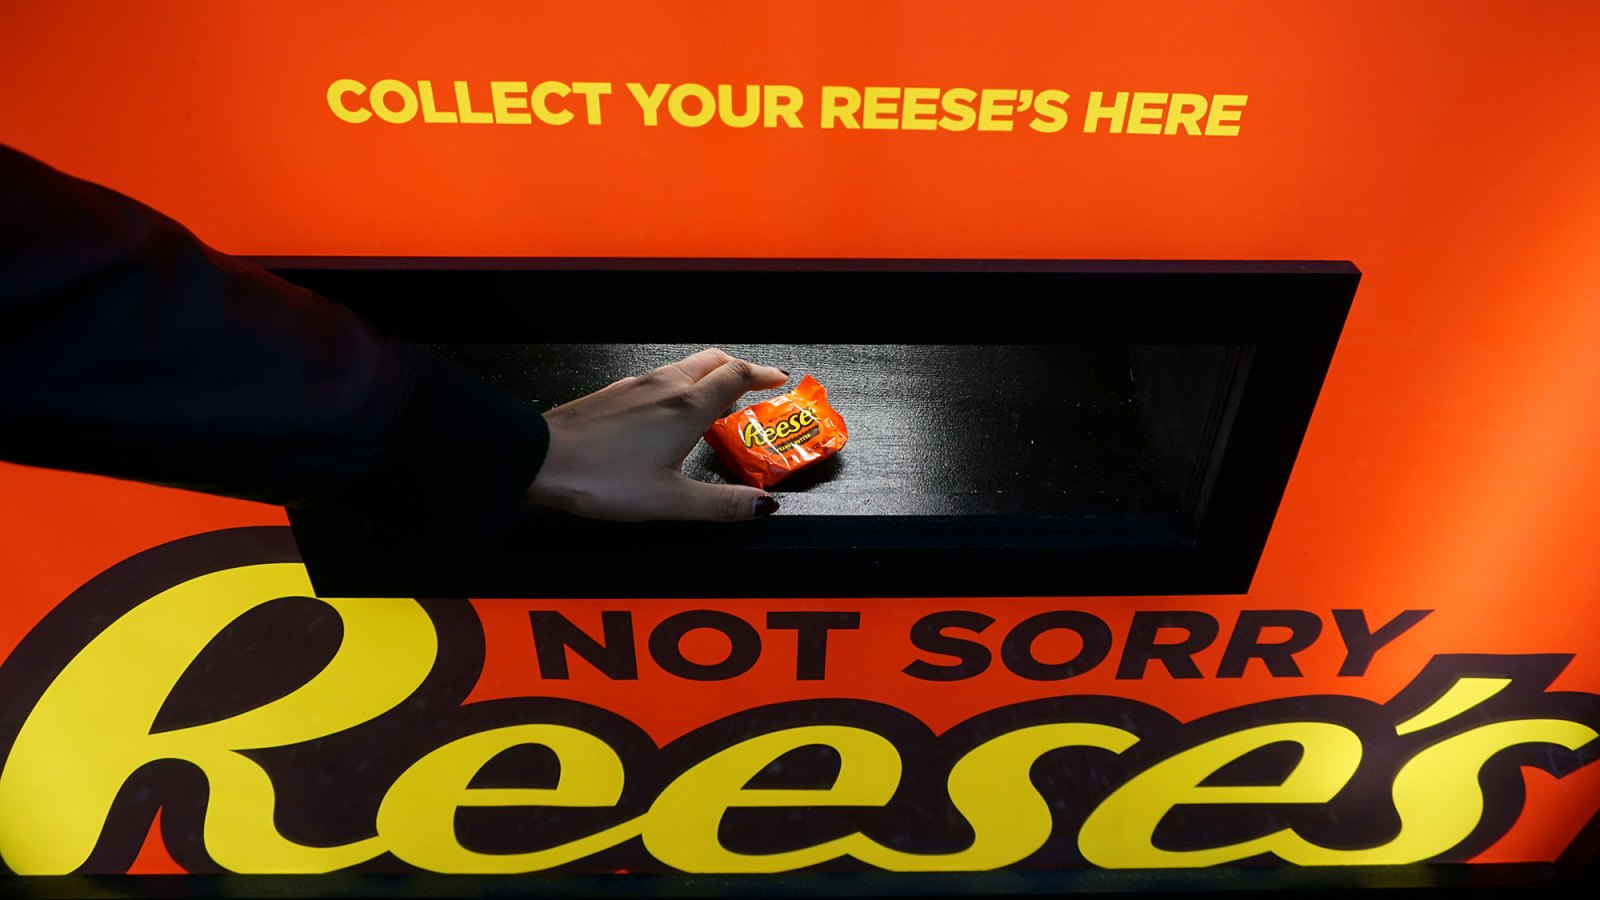 3e7a4c11ec744c Reese s Candy Exchange Vending Machine Is Here to Revolutionize Halloween  and Swap Unwanted Treats